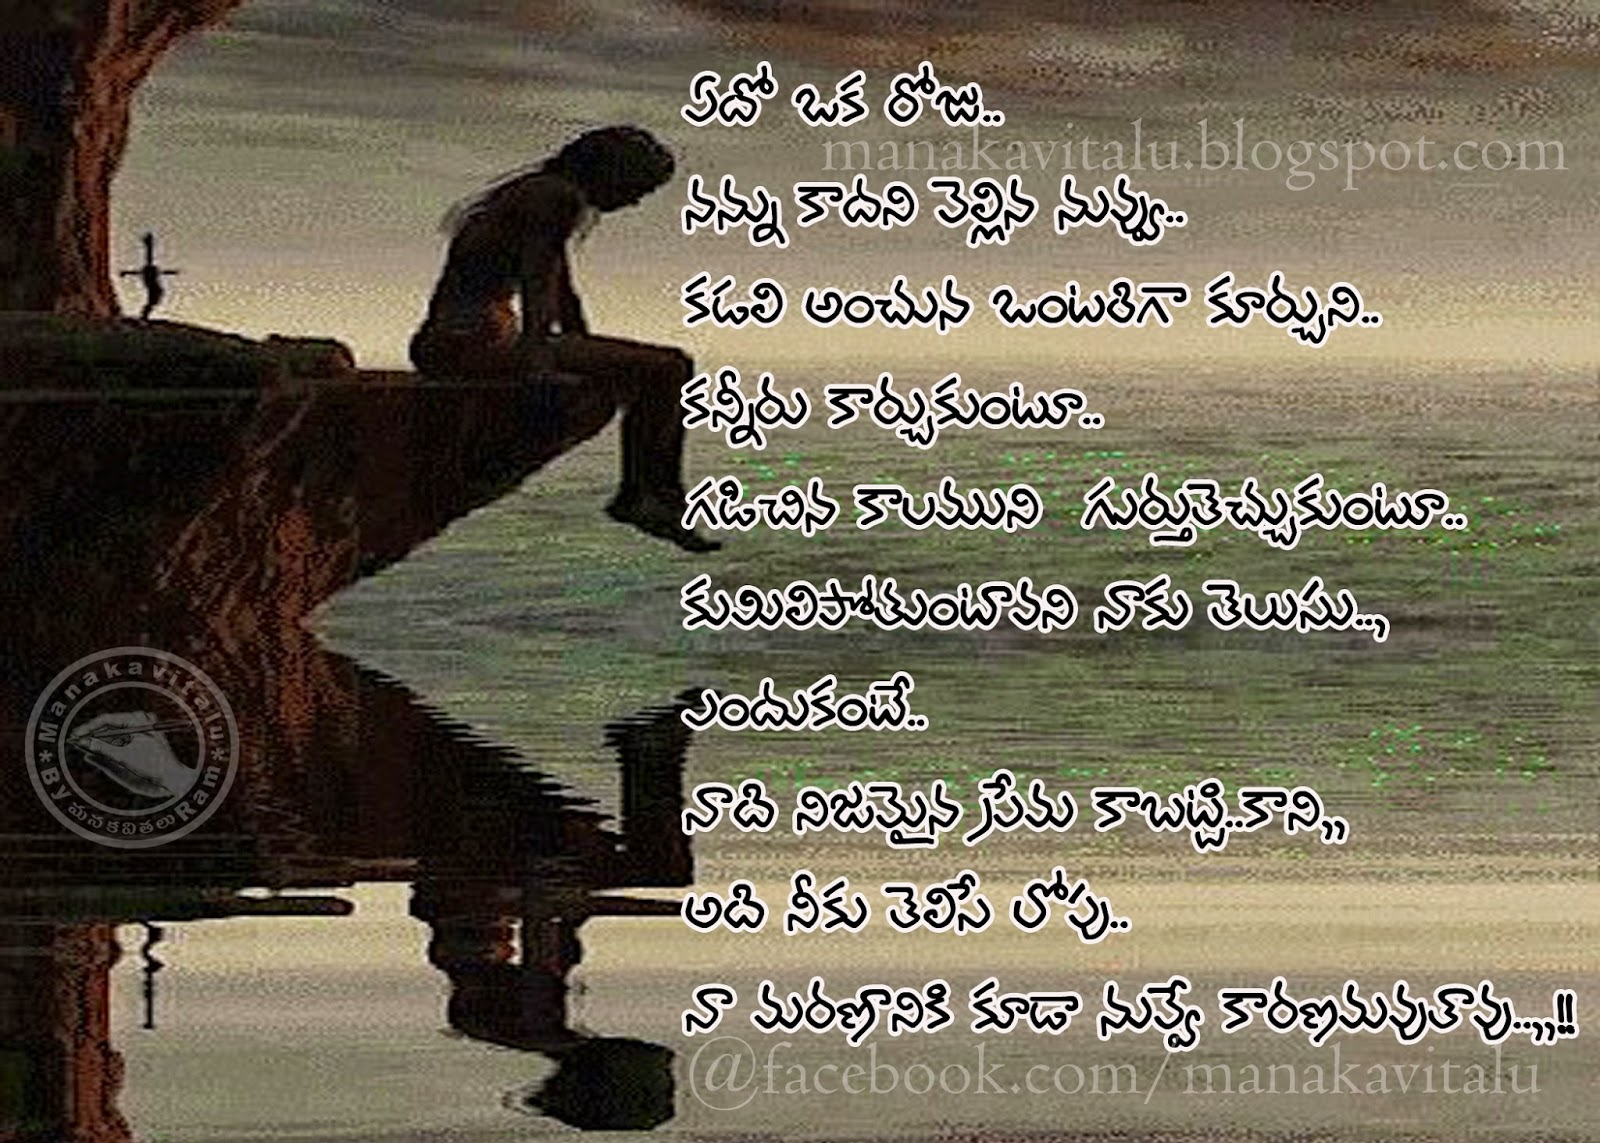 love failure Telugu quotes images by manakavitalu